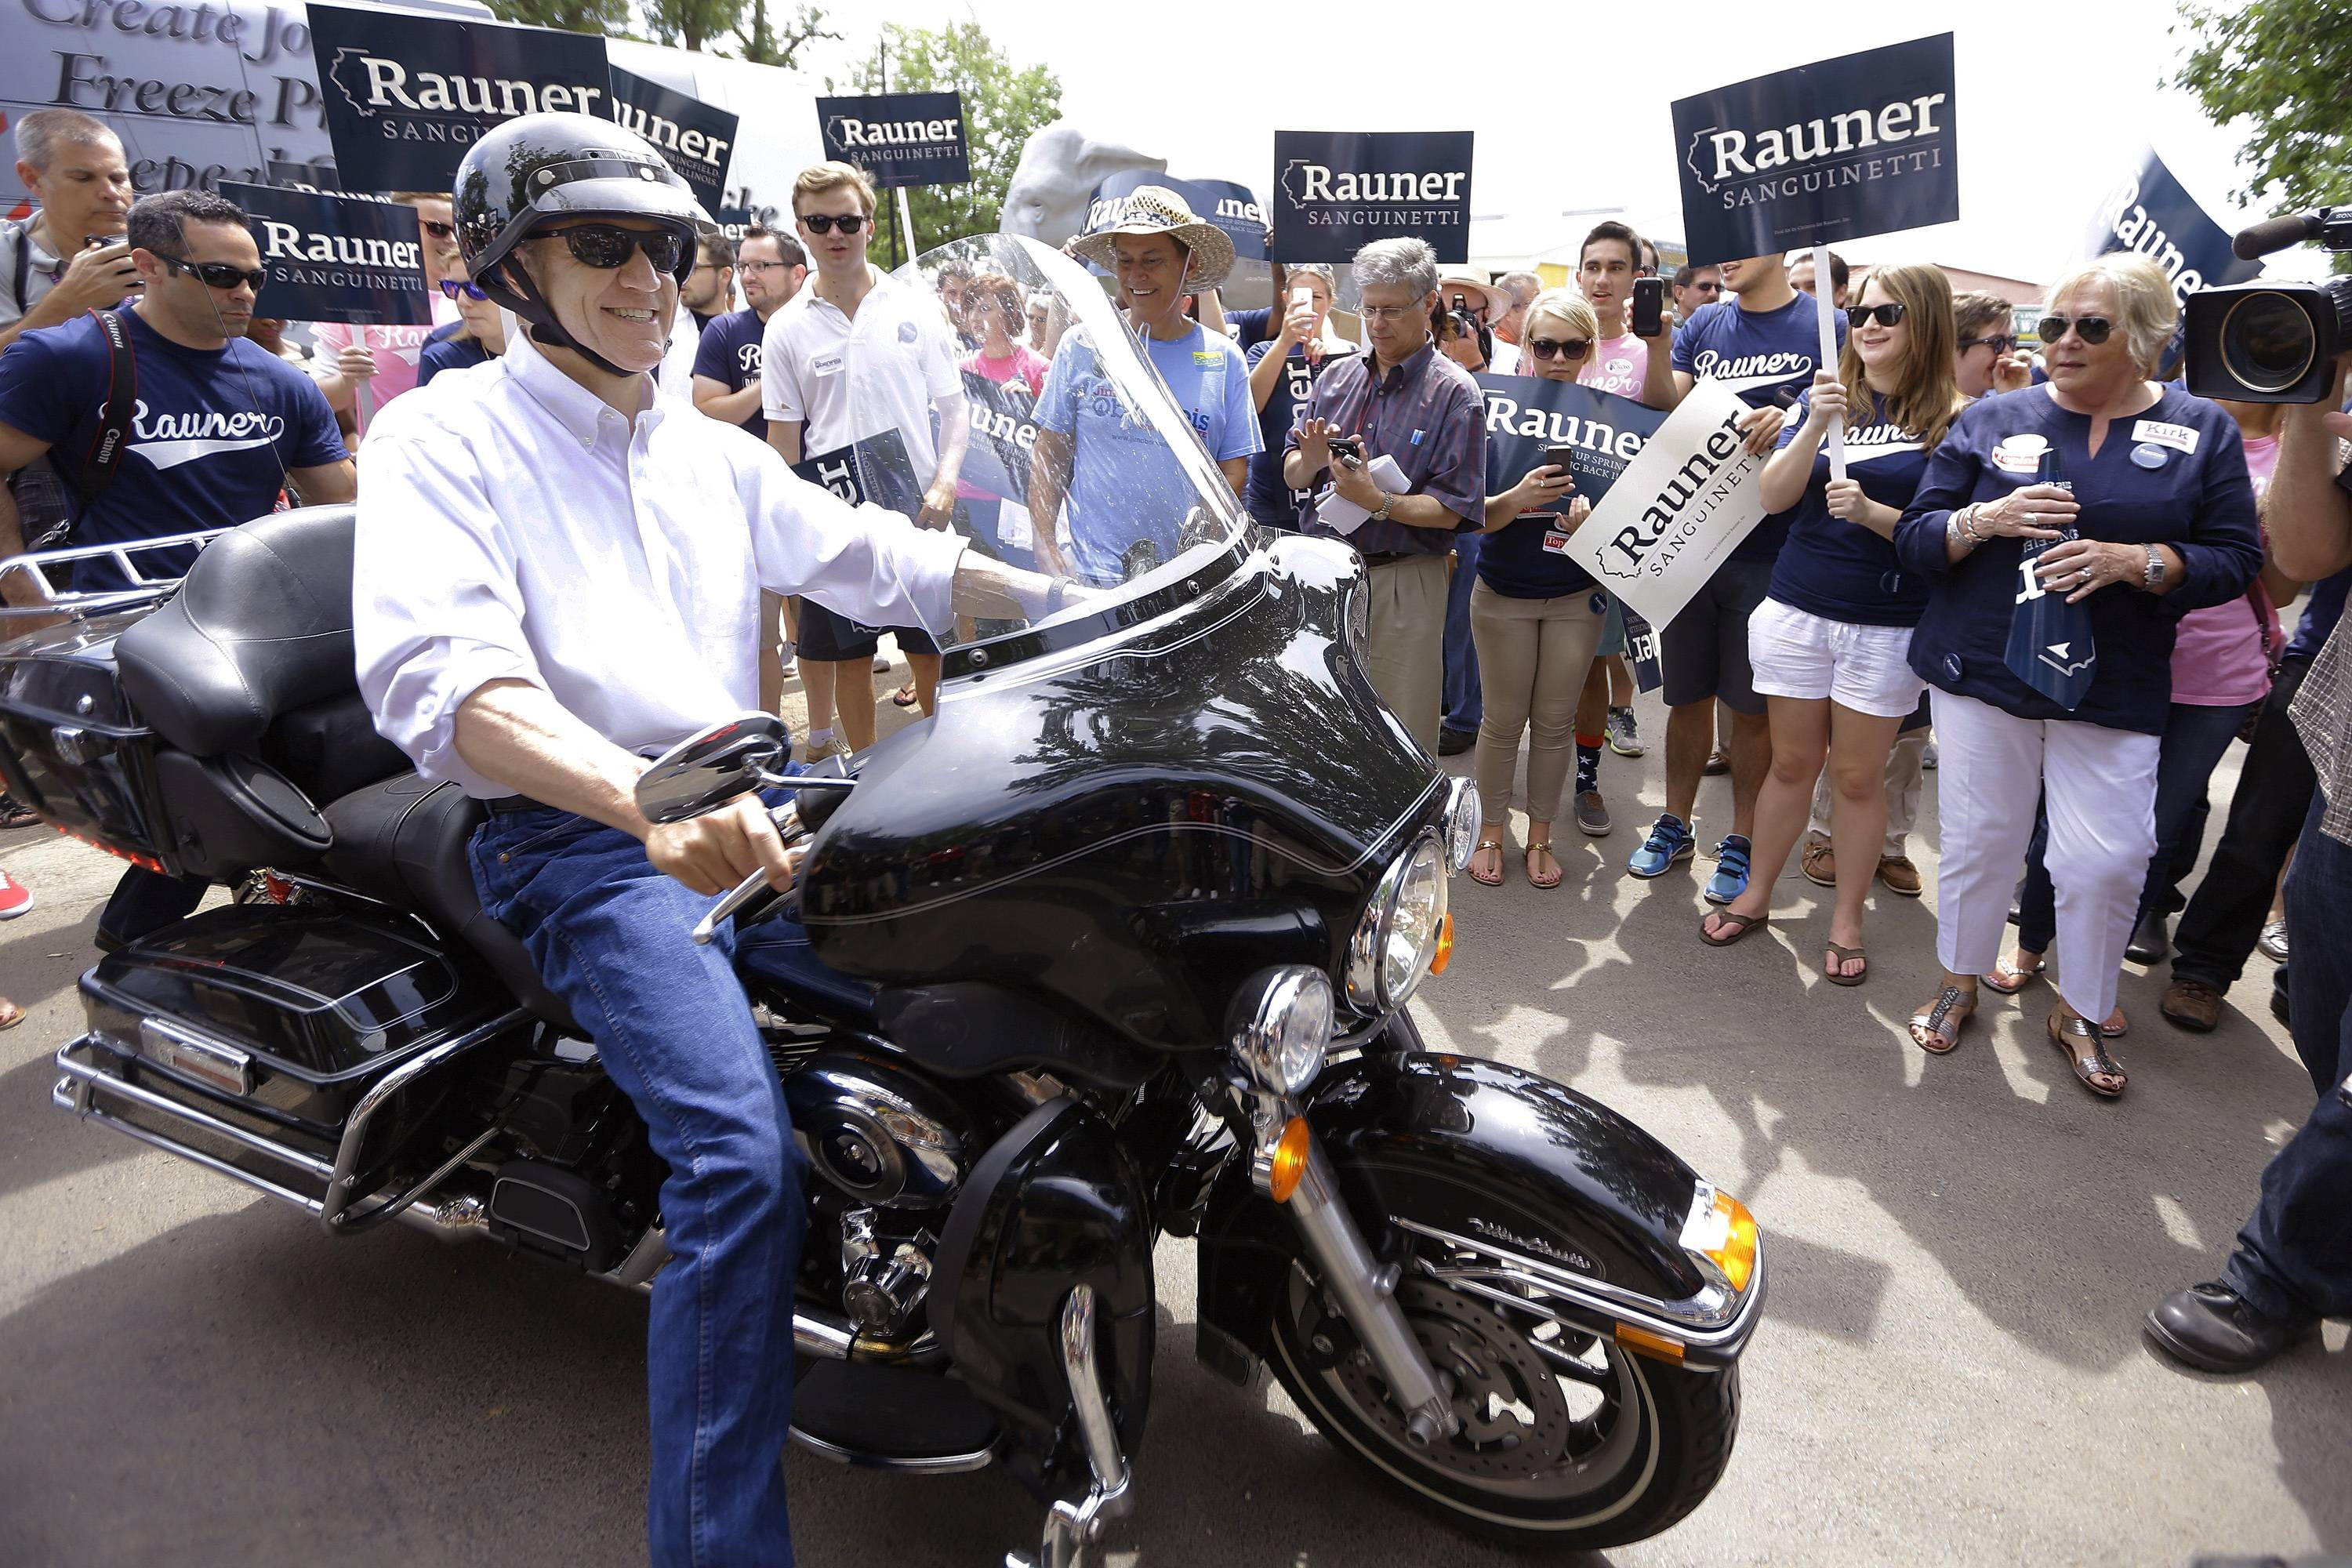 Republican gubernatorial candidate Bruce Rauner rides his Harley-Davidson motorcycle into the Illinois State Fairgrounds before participating in a Republican Day rally Thursday in Springfield.